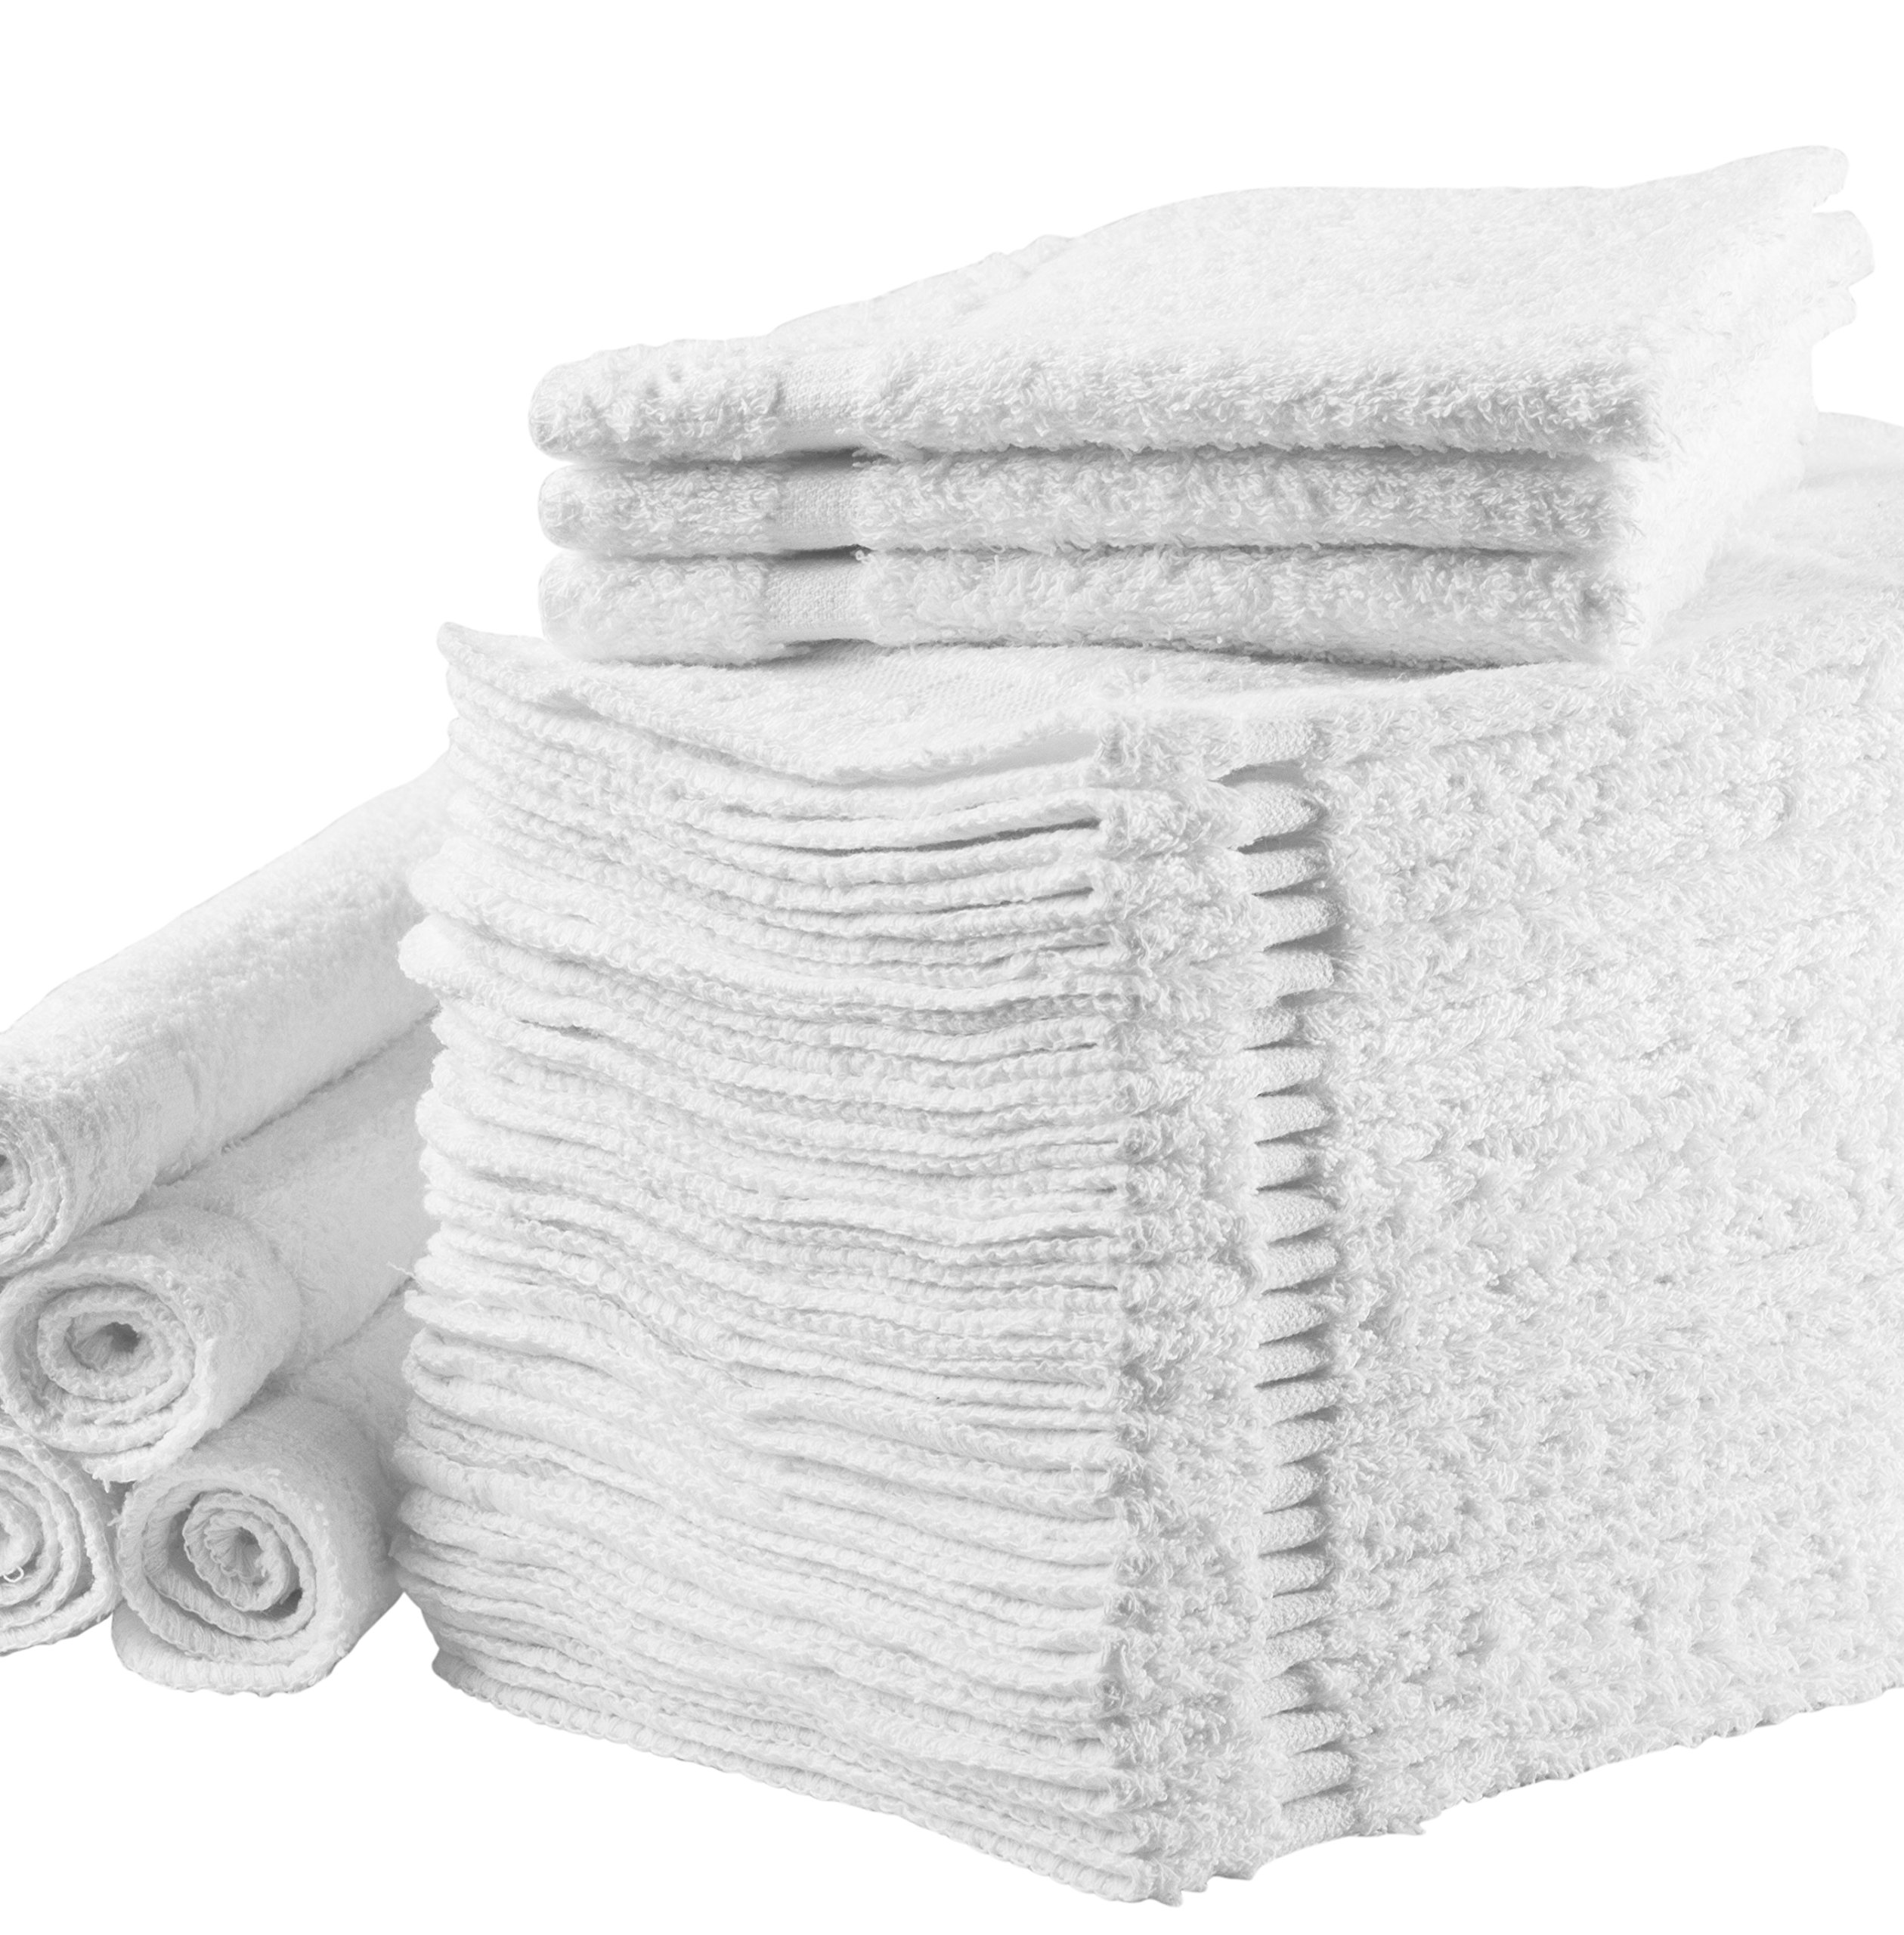 "Alurri Washcloths Towel Set (White, Bulk Pack of 24), Kitchen & Dish Cotton Cloth, Bath and Face Cleansing, Baby Washcloth, Multi-Purpose Soft Cleaning Rags - Hand, Gym, Spa, Sports 12""X12"" Towels by"